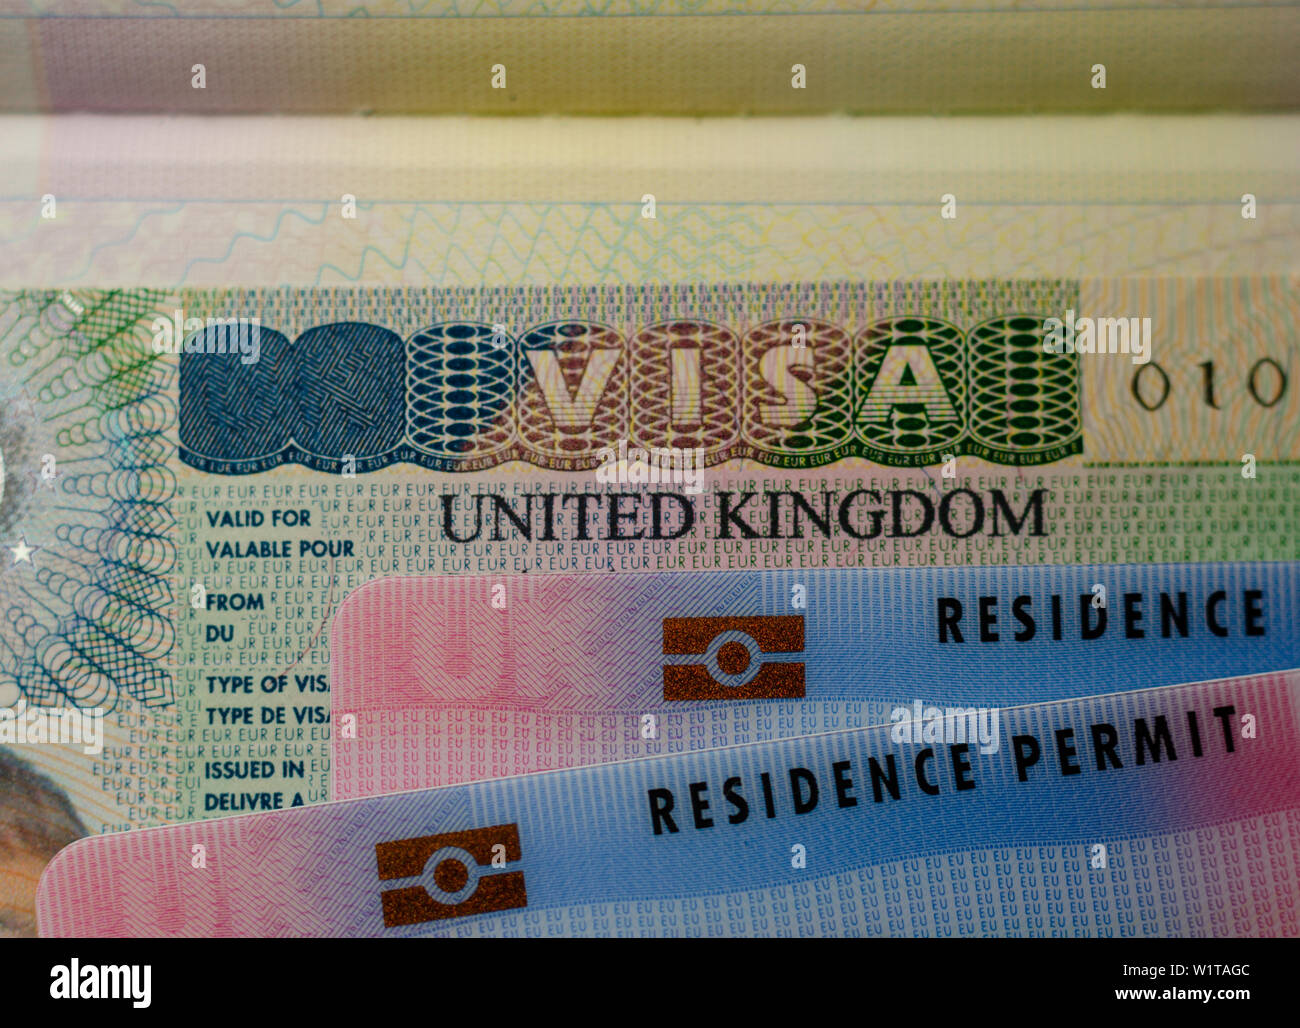 UK BRP cards for Tier 2 work visa placed on top of UK Business VISA sticker in the passport. Close up photo. Stock Photo